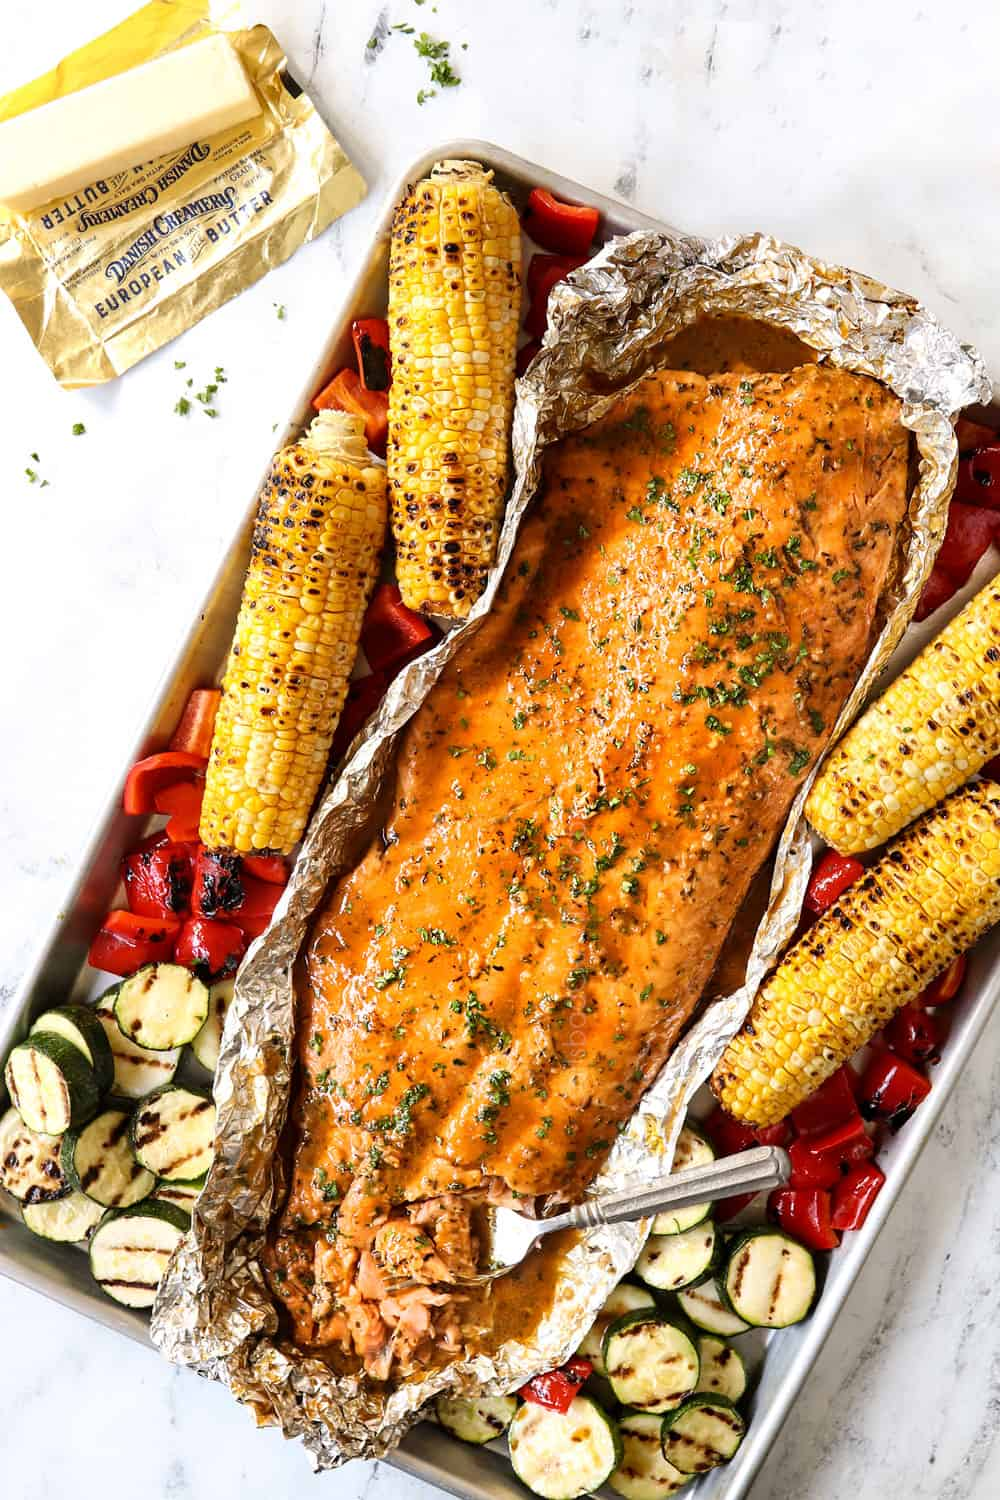 showing how to make grilled salmon in foil by letting the salmon rest after grilling